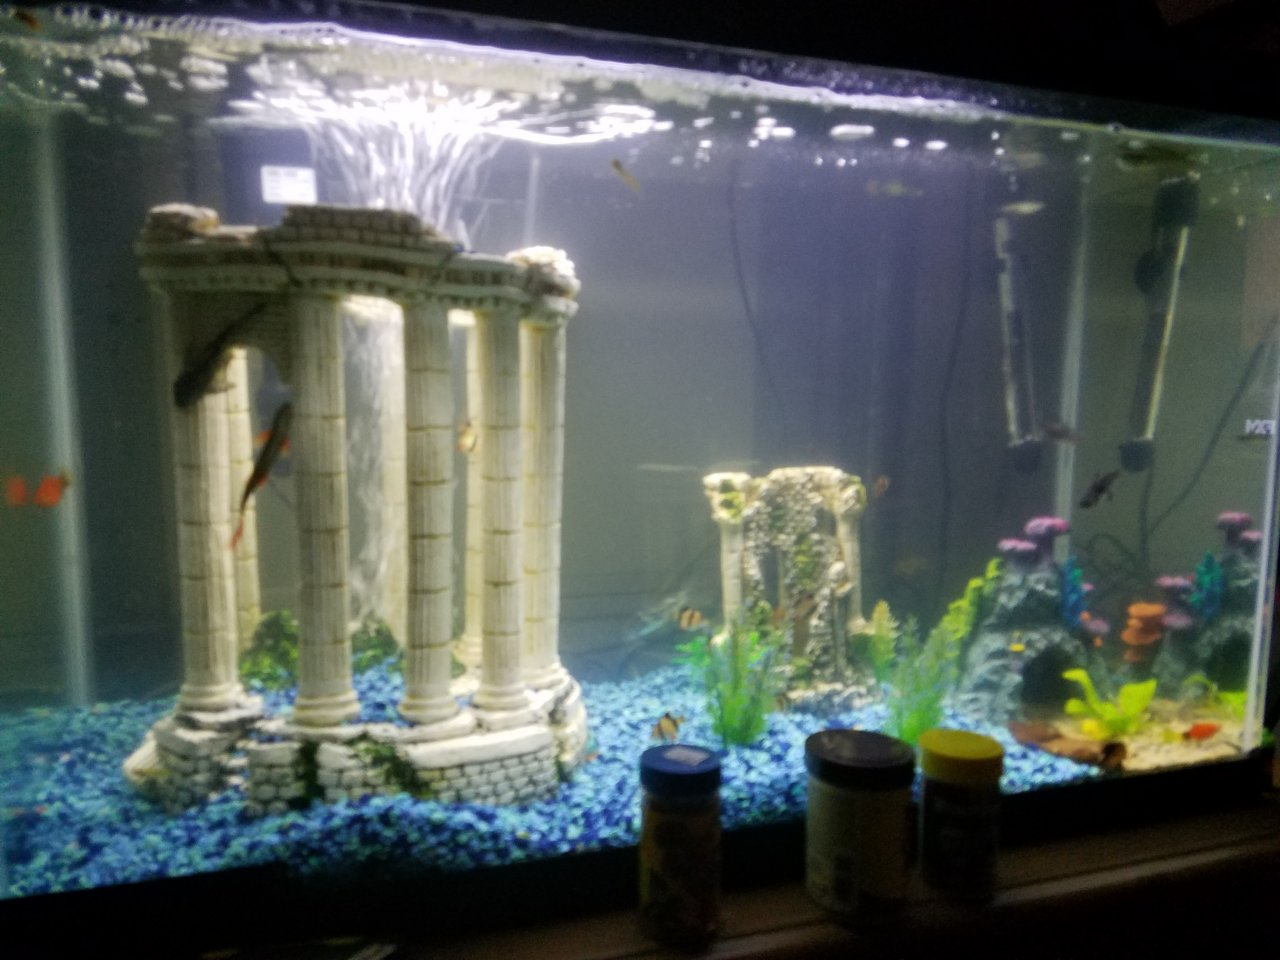 Freshwater Aquarium Fish Under 1 Inch - I have 30 fish in one 30 gallon aquarium is it too crowded please help i have a 4 in pictus catfish 3 inch silver arowana 2 sharks like 9 tiger barbs